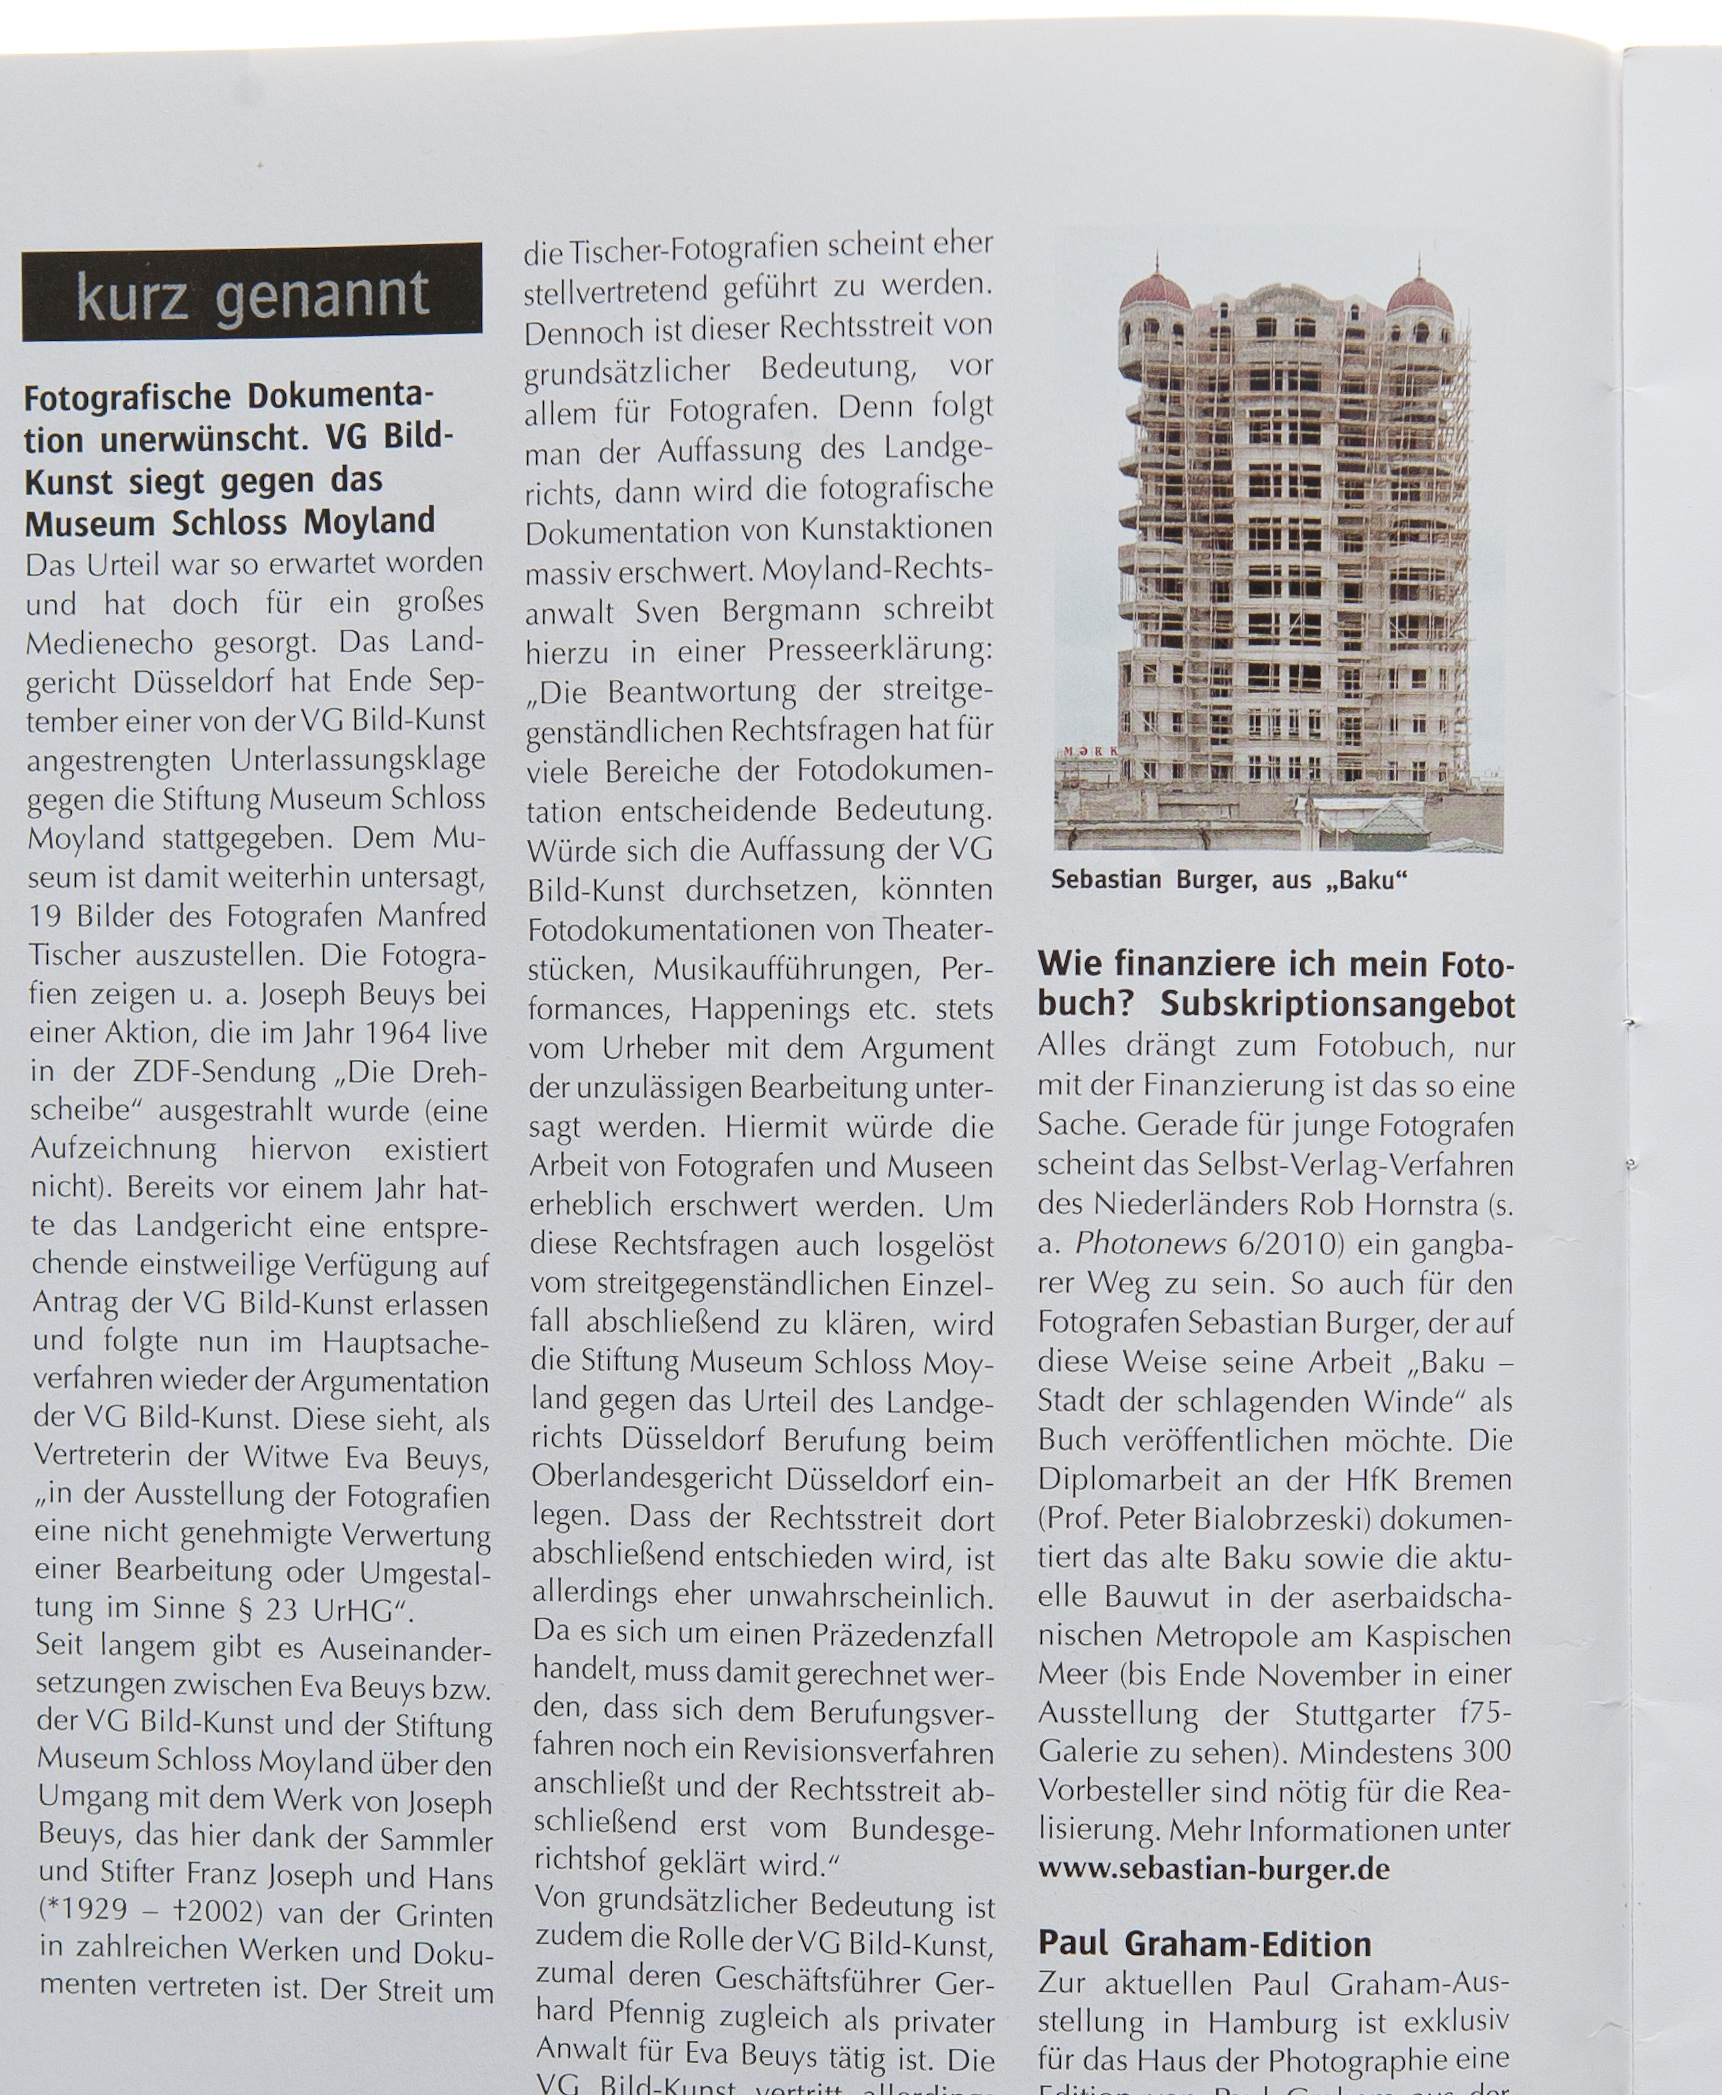 Photo Presse 10/14/2010 about the process of financing the book